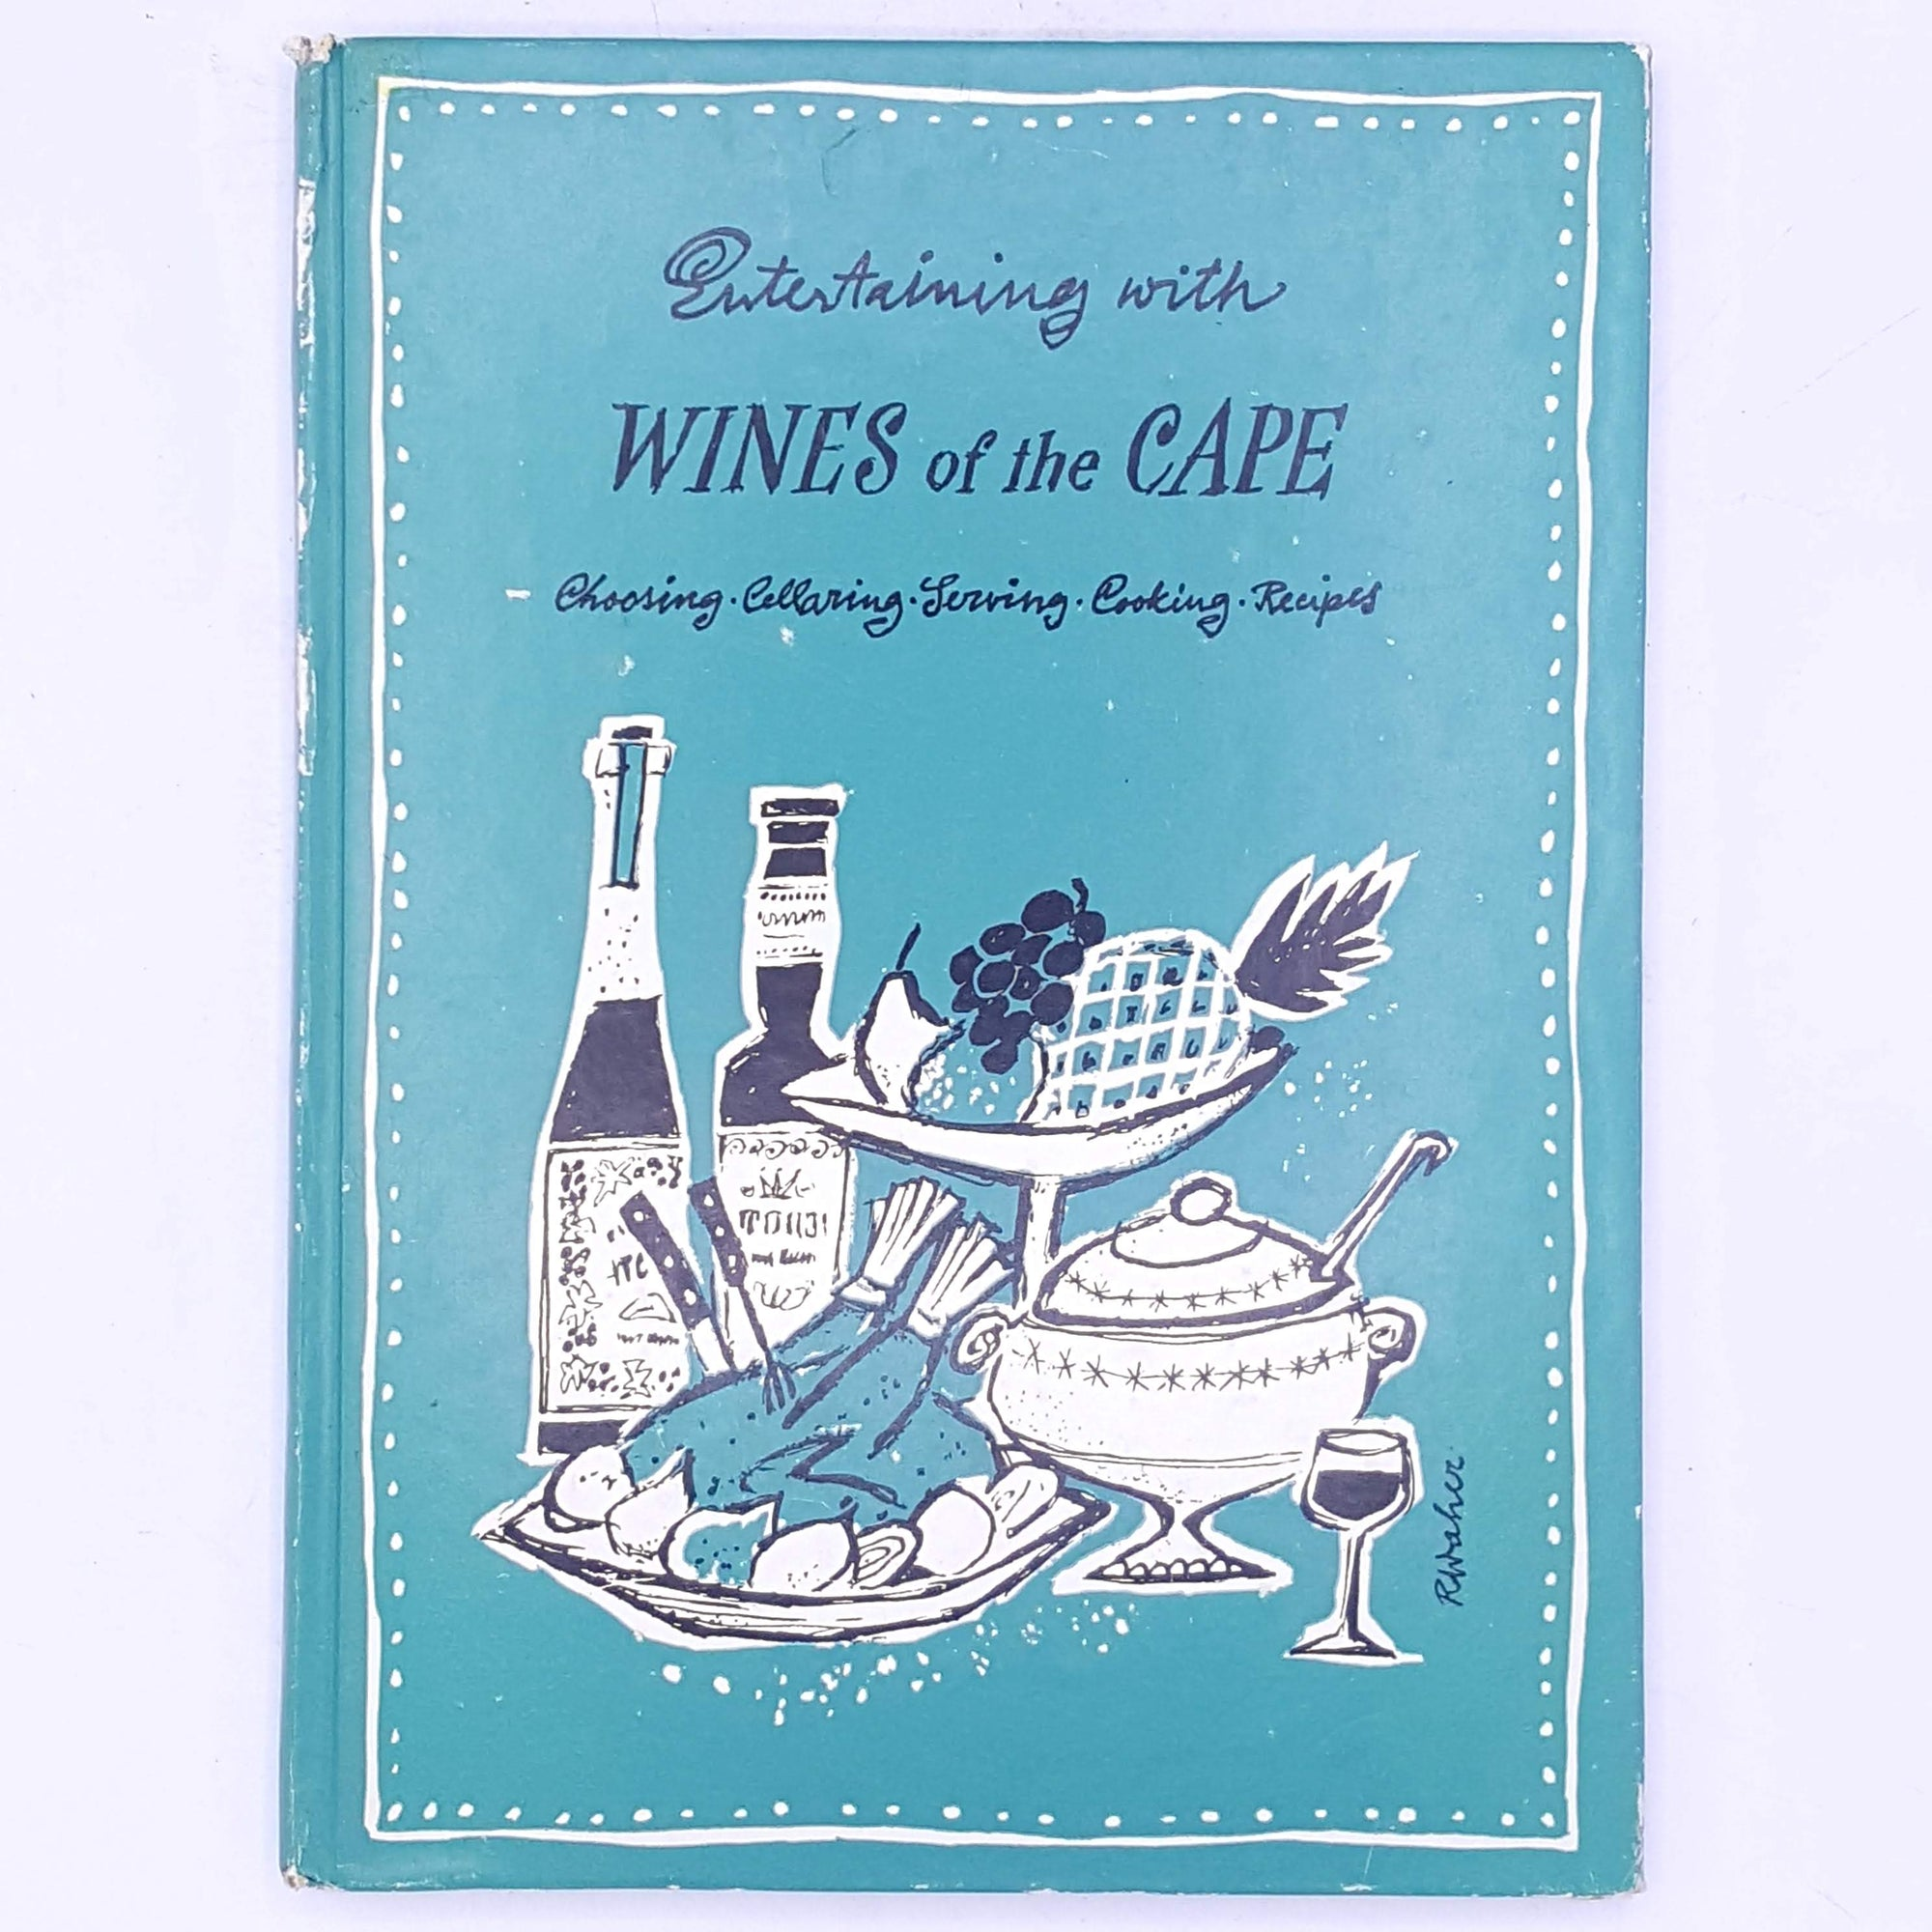 thrift-wines-alcohol- patterned-books-choosing-cellaring-serving-cooking-recipes-old-decorative-classic-vintage-wines-of-the-cape-country-house-library-antique-